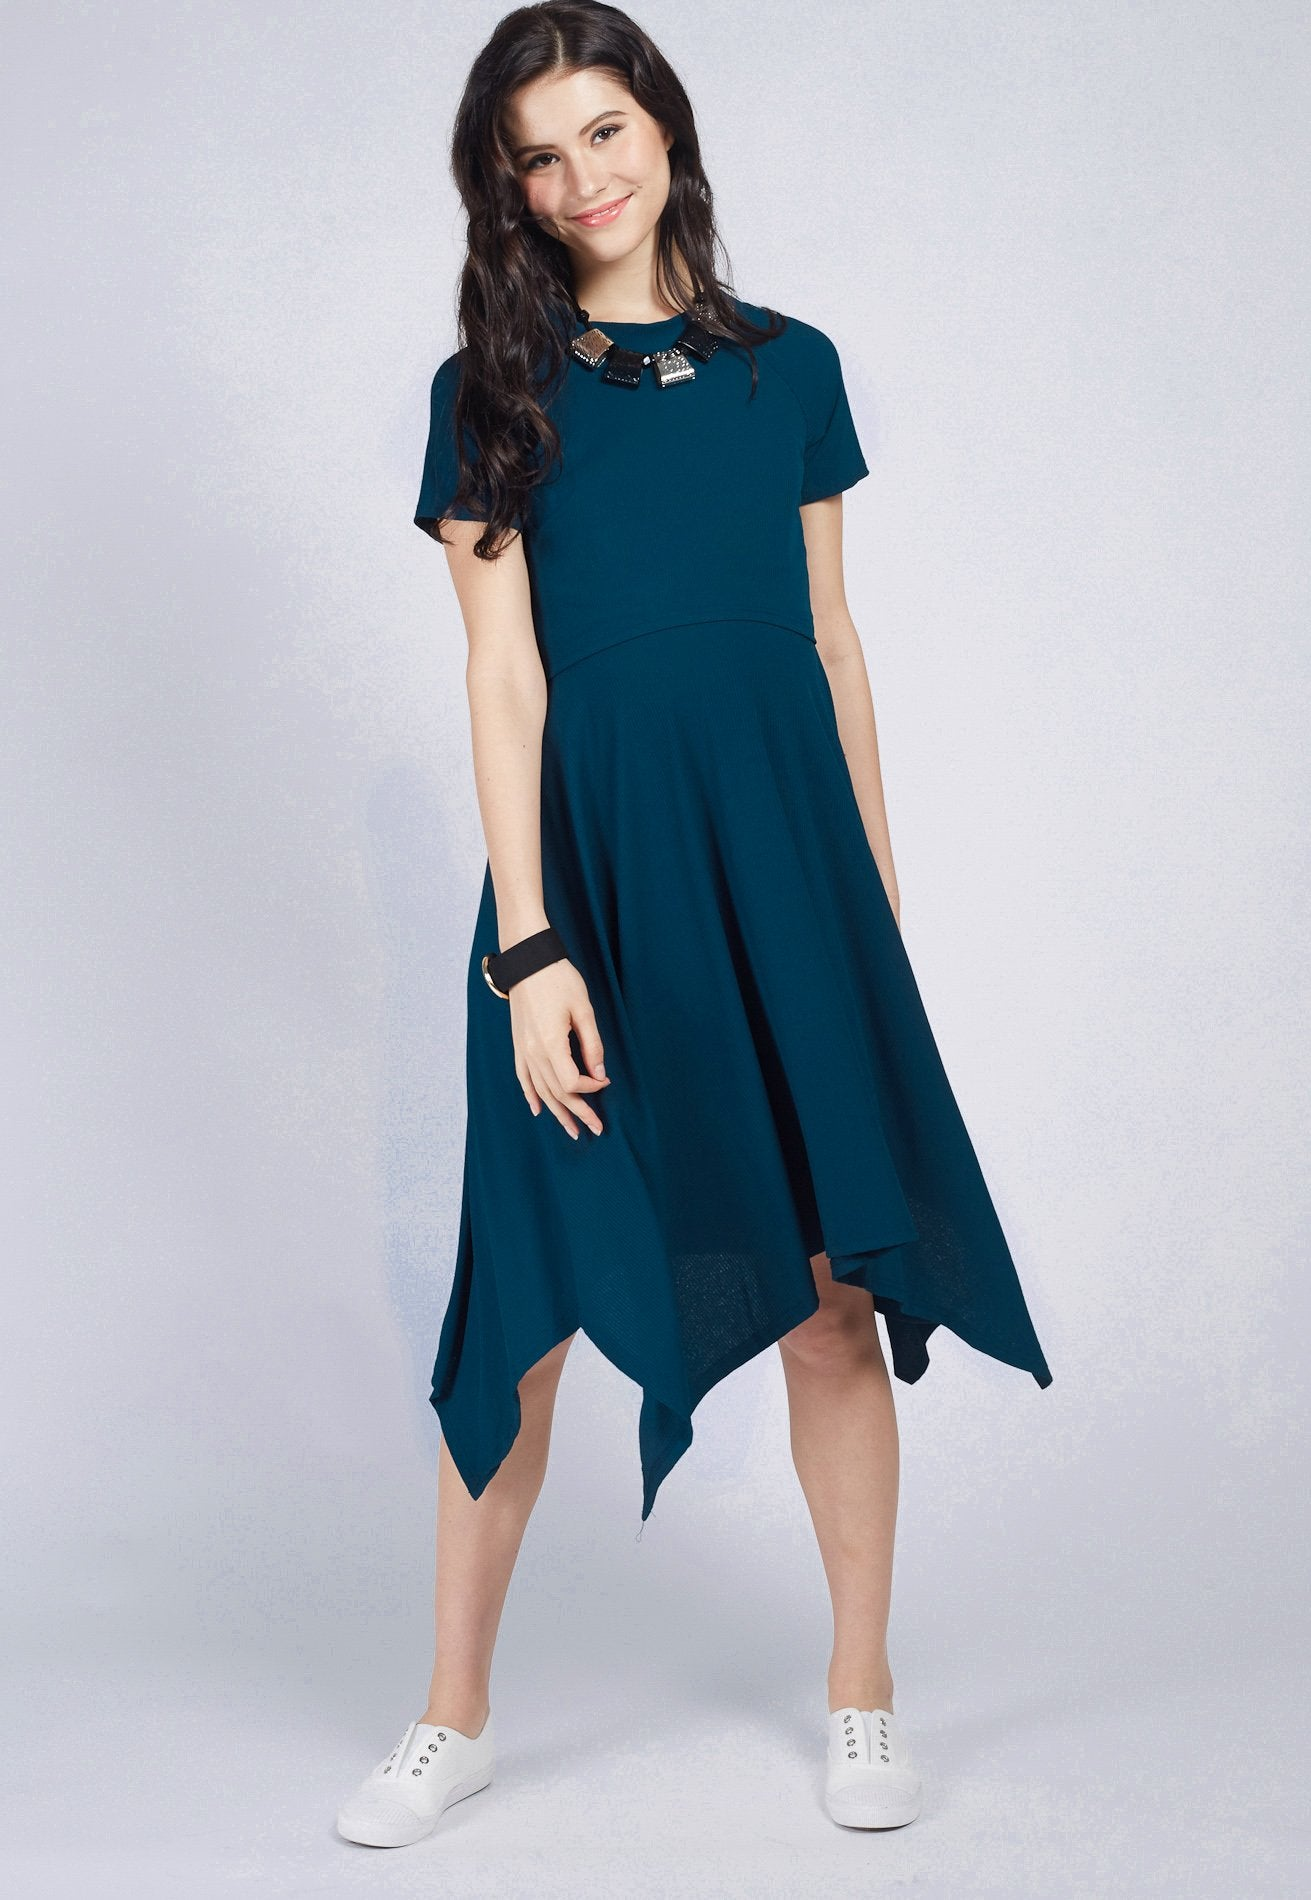 Handkerchief Knitted Nursing Dress  by Jump Eat Cry - Maternity and nursing wear